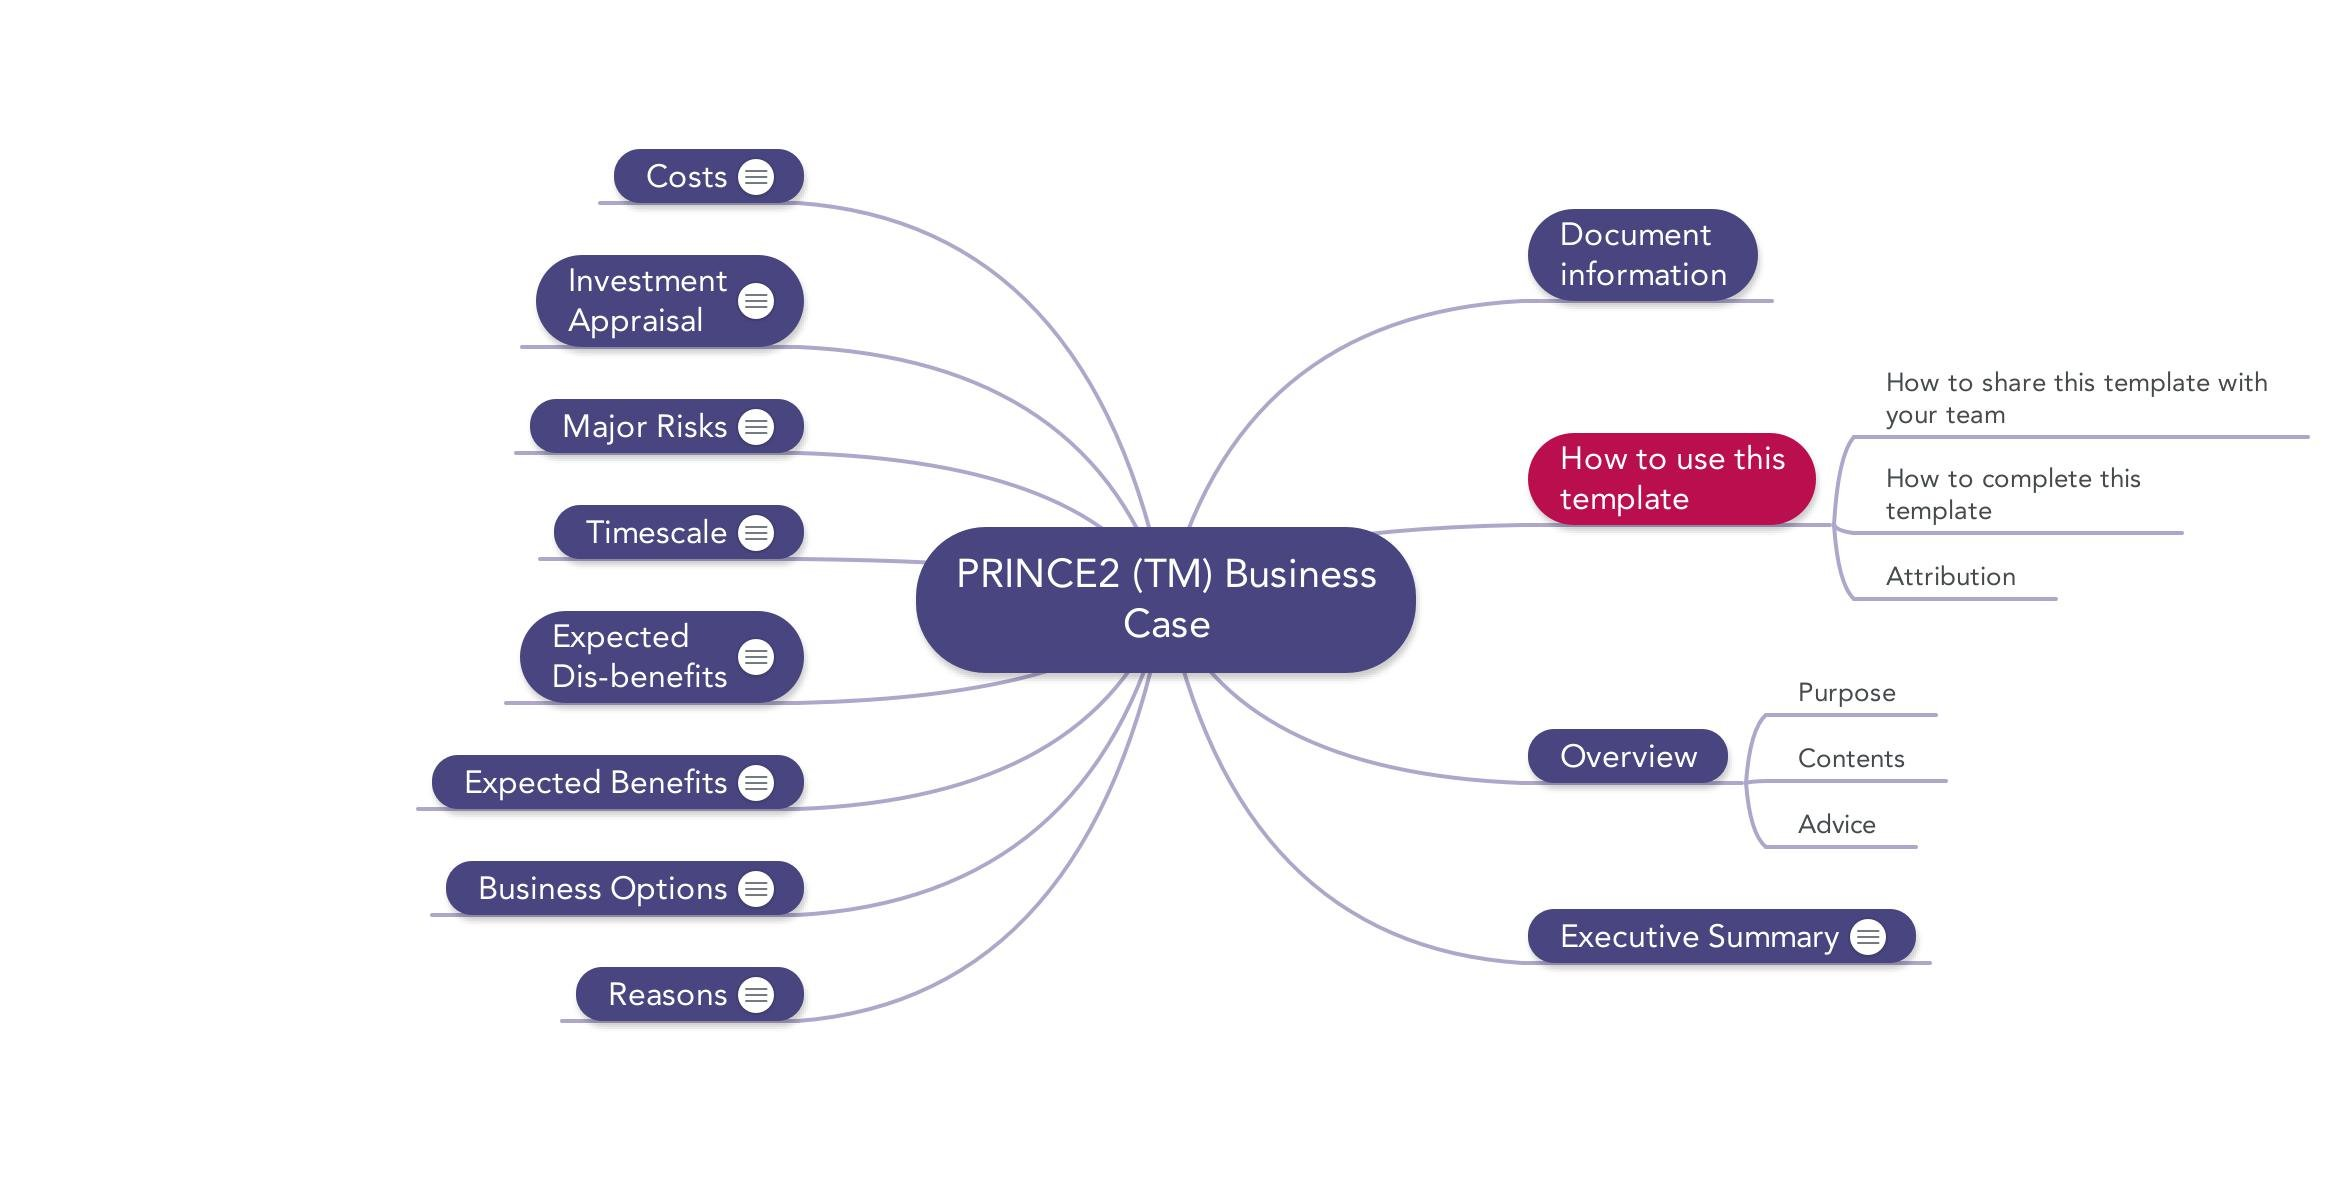 Prince2 business case download template prince2 business case friedricerecipe Gallery